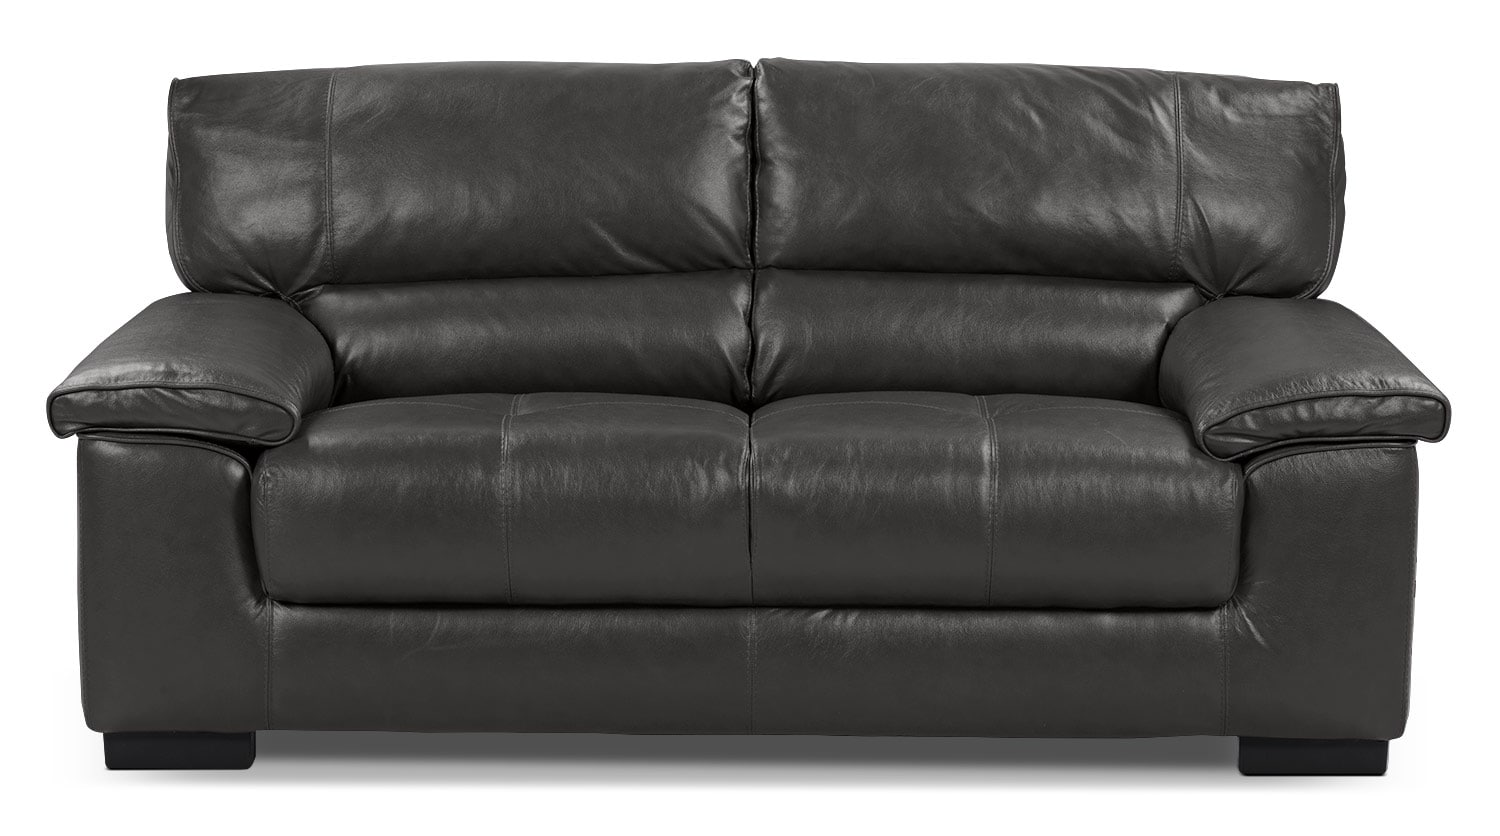 Chateau D'Ax 100% Genuine Leather Loveseat - Charcoal